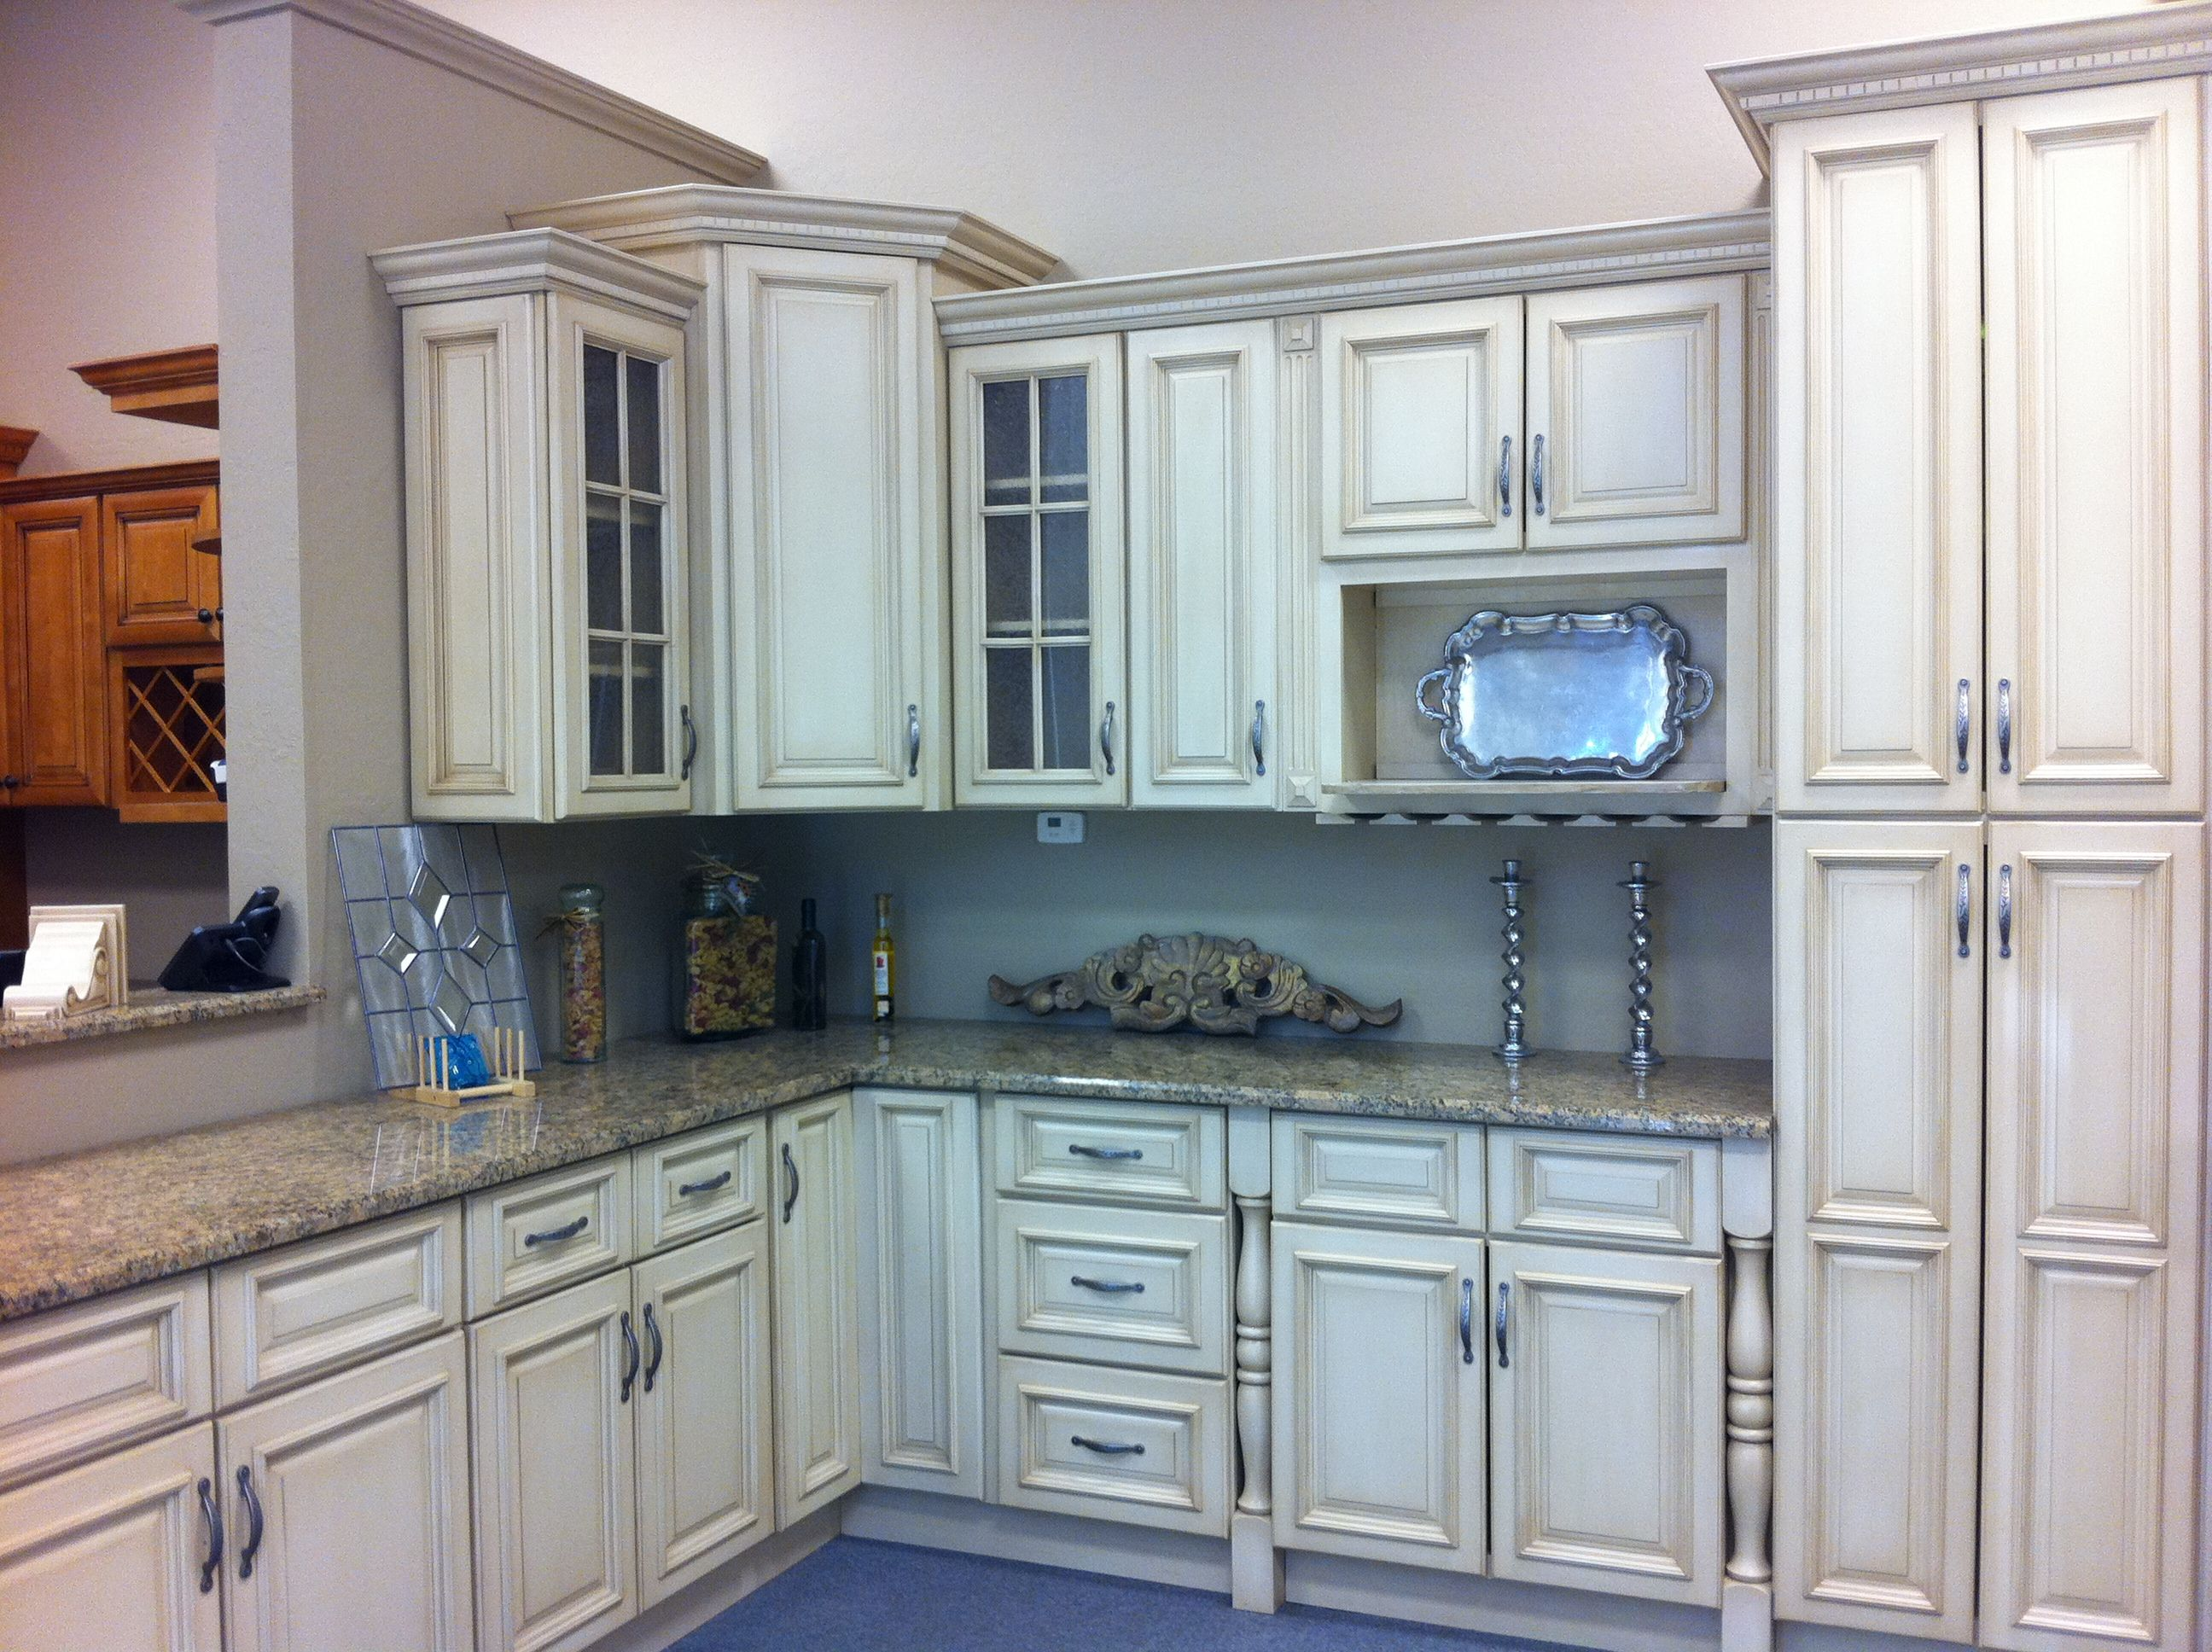 cream and grey kitchen gray kitchen cabinets Vintage Cream Cabinets For Kitchen Cabinetry Set Polished And Grey